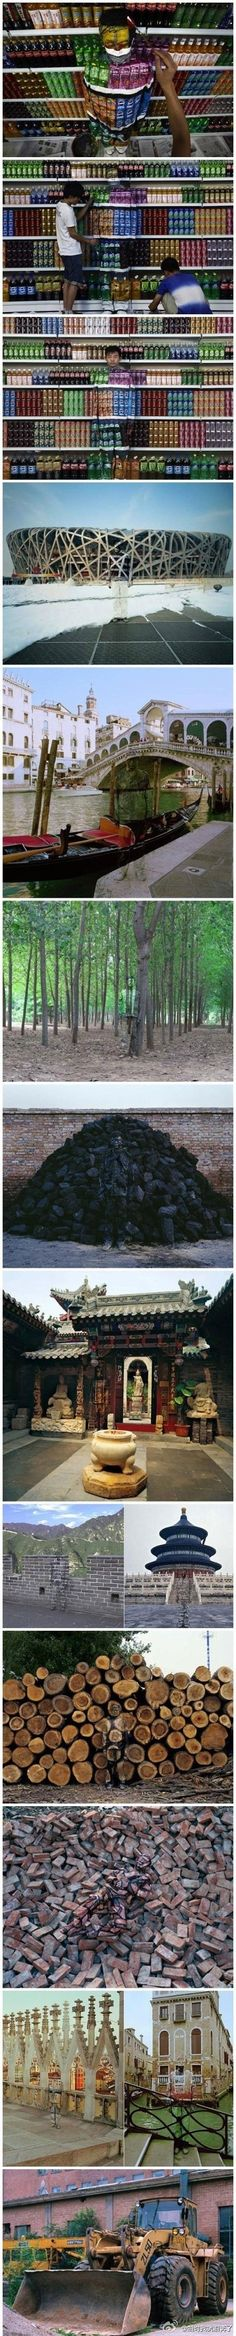 Artist Liu Bolin. This guy has such a great point of view